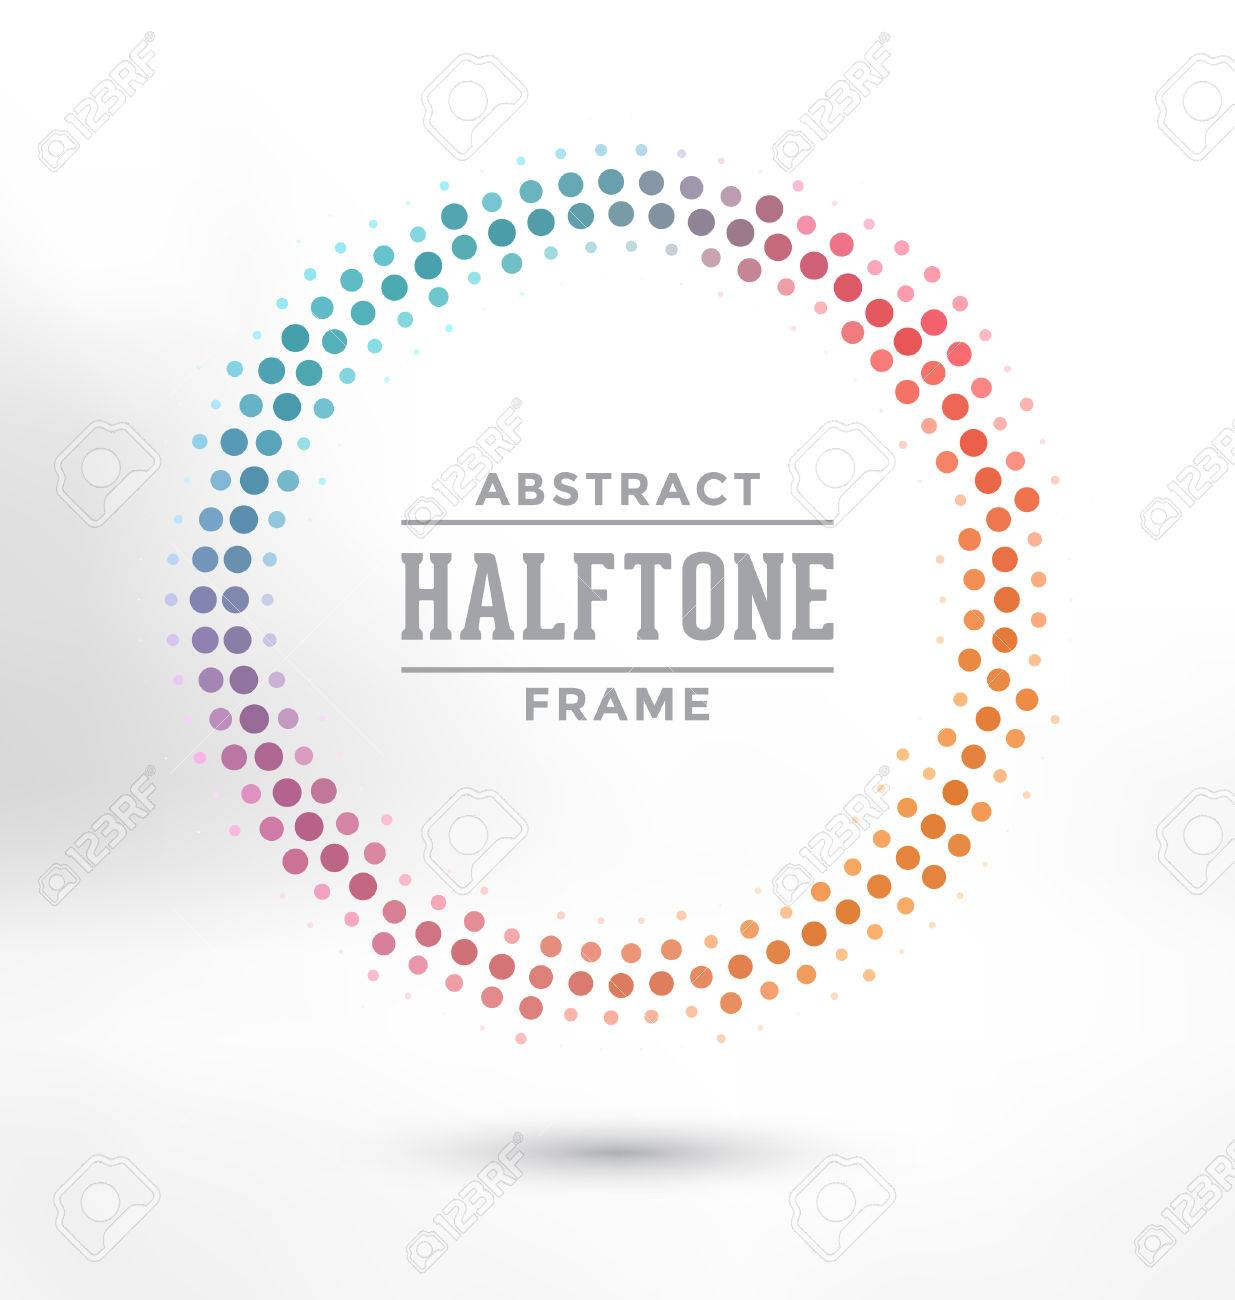 Abstract Halftone Circle Frame - Colorful Design - 45168338